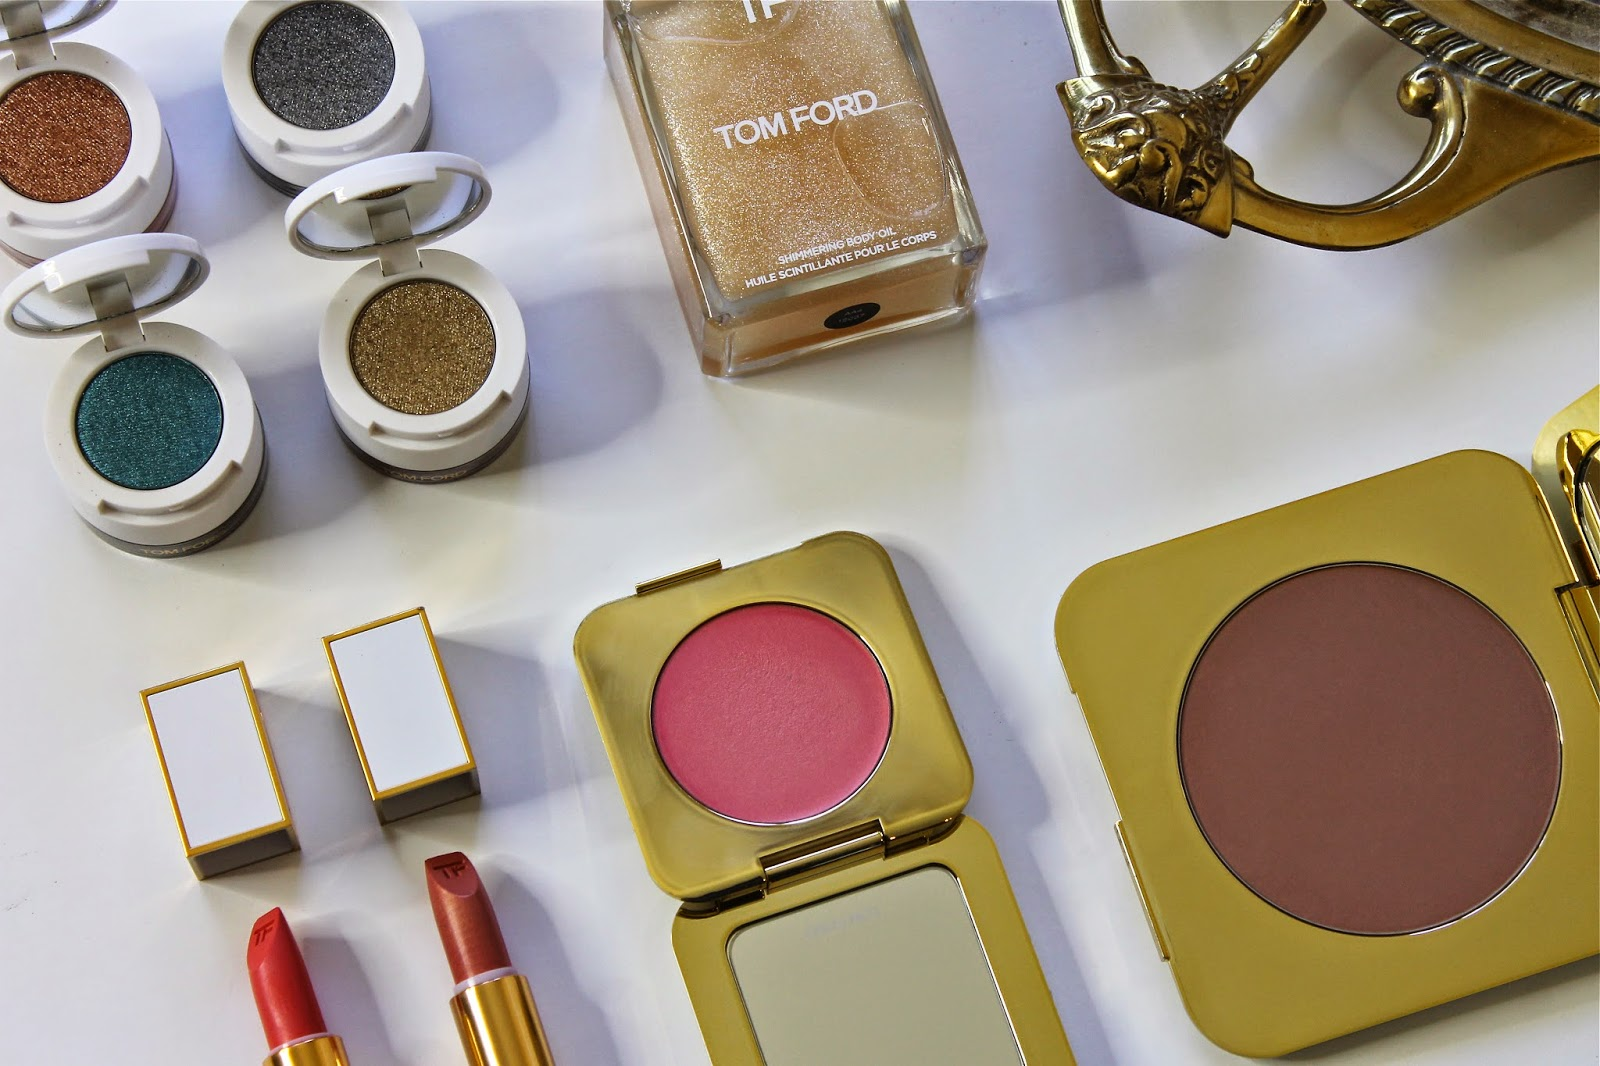 TOM FORD SUMMER 2015 SOLEIL COLLECTION